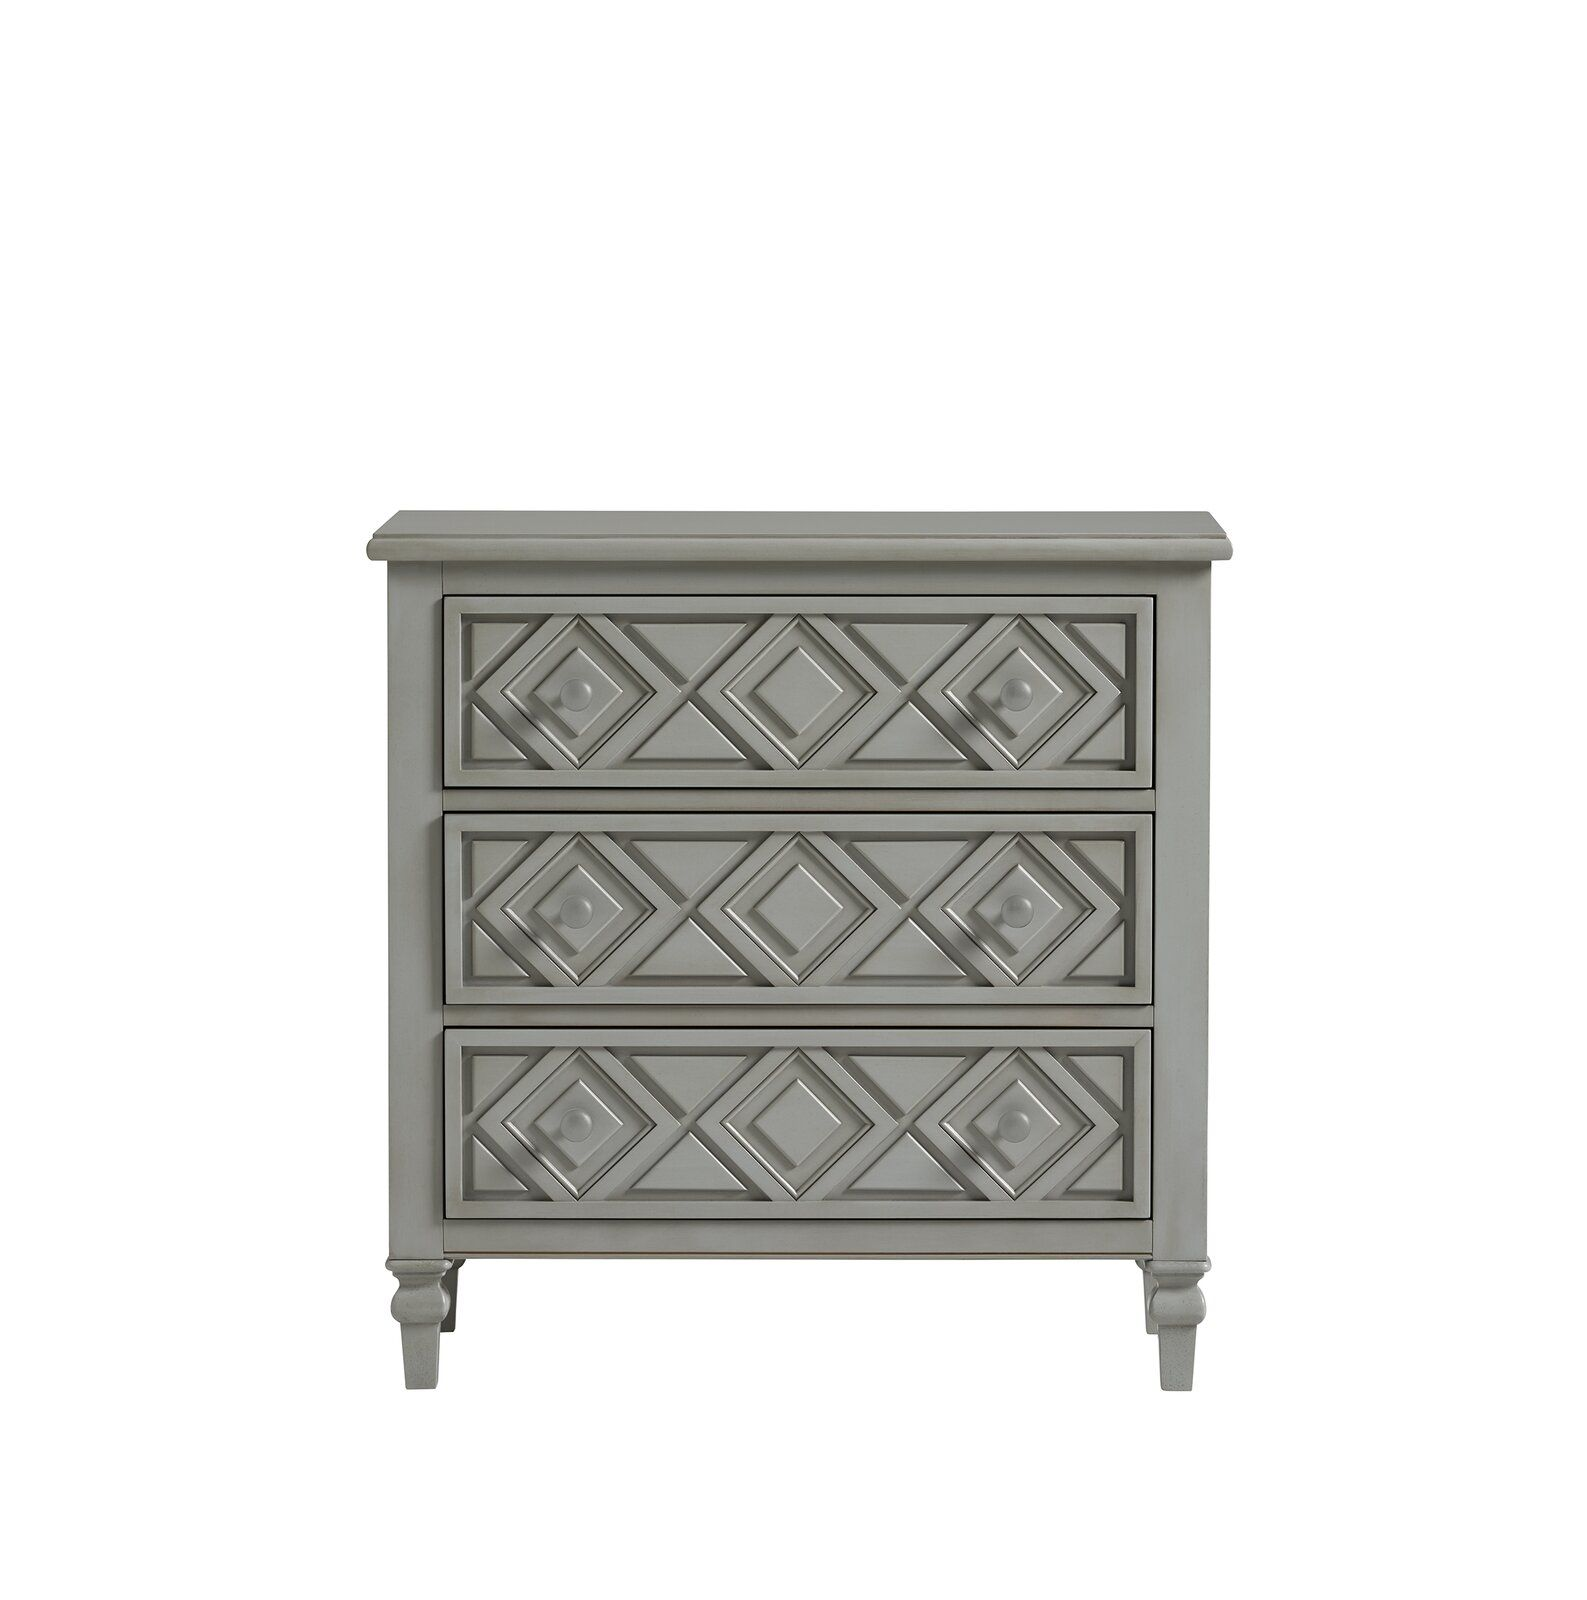 Younghouselove Diamond 3 Drawer Chest Wayfair 3 Drawer Chest